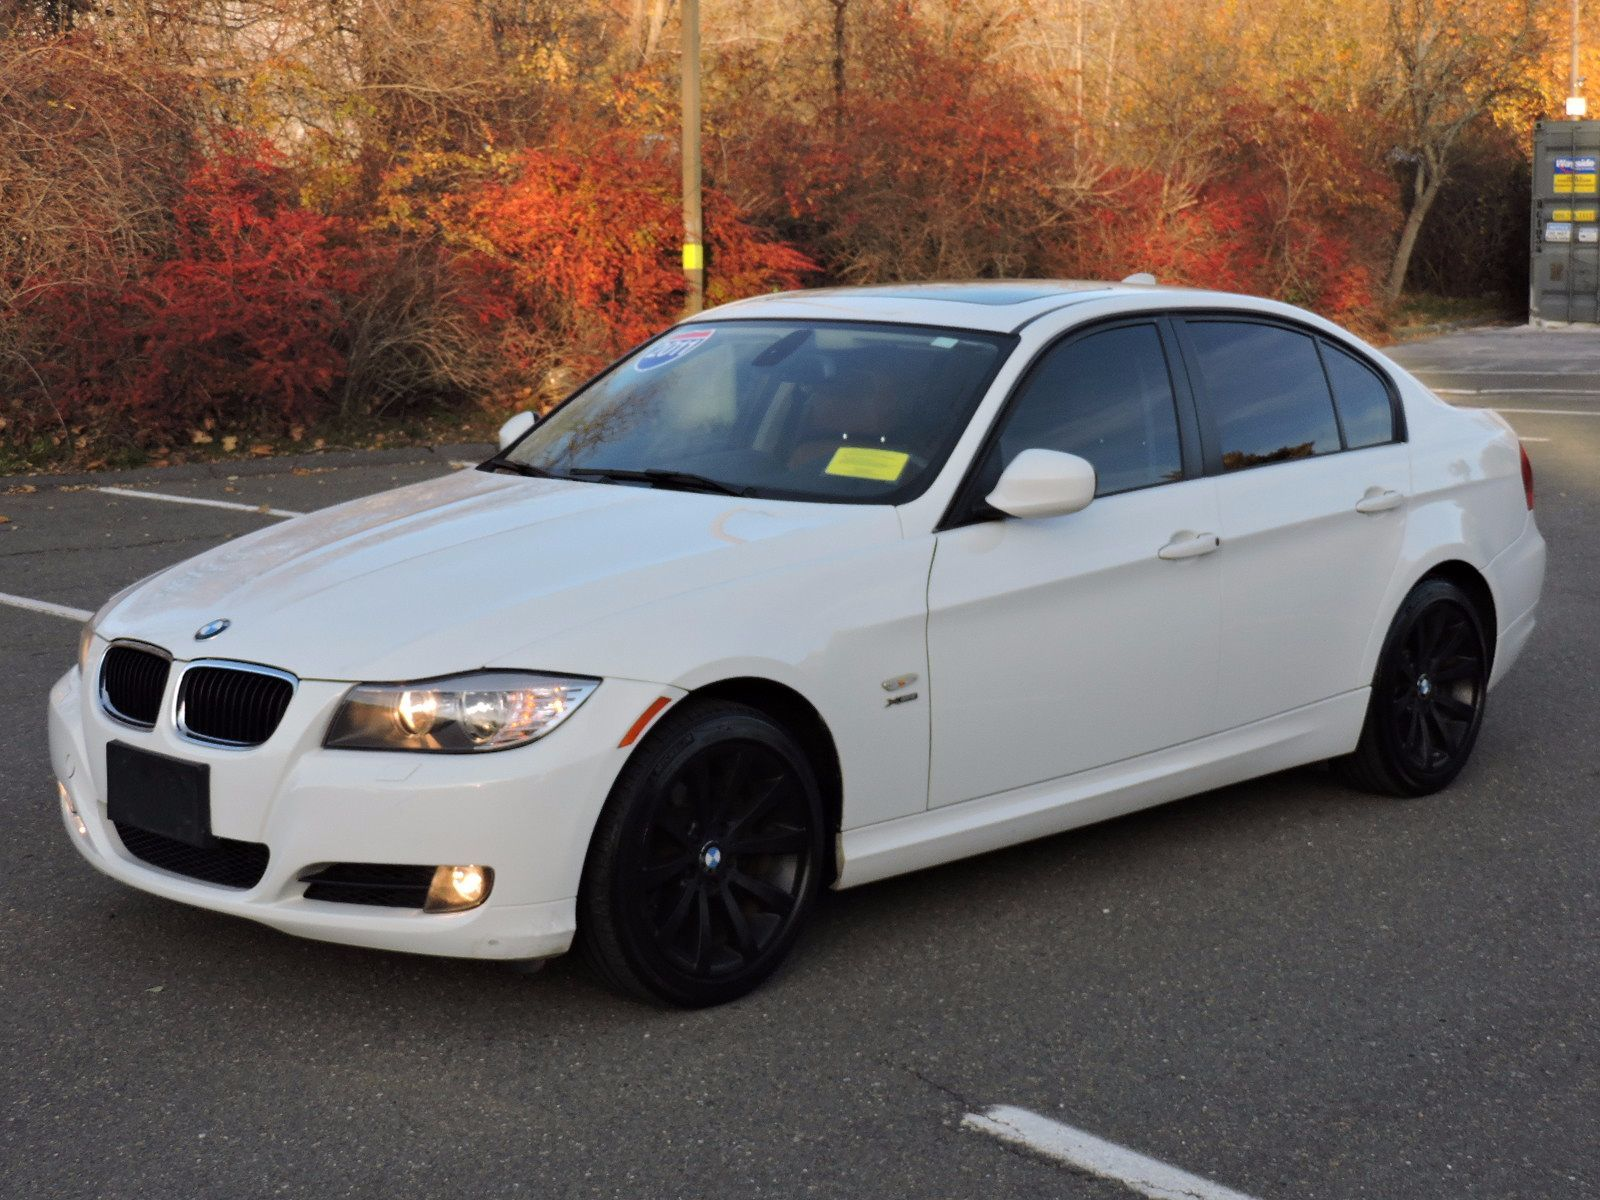 Used 2011 Bmw 328i Xdrive 5 5l V8 At Auto House Usa Saugus